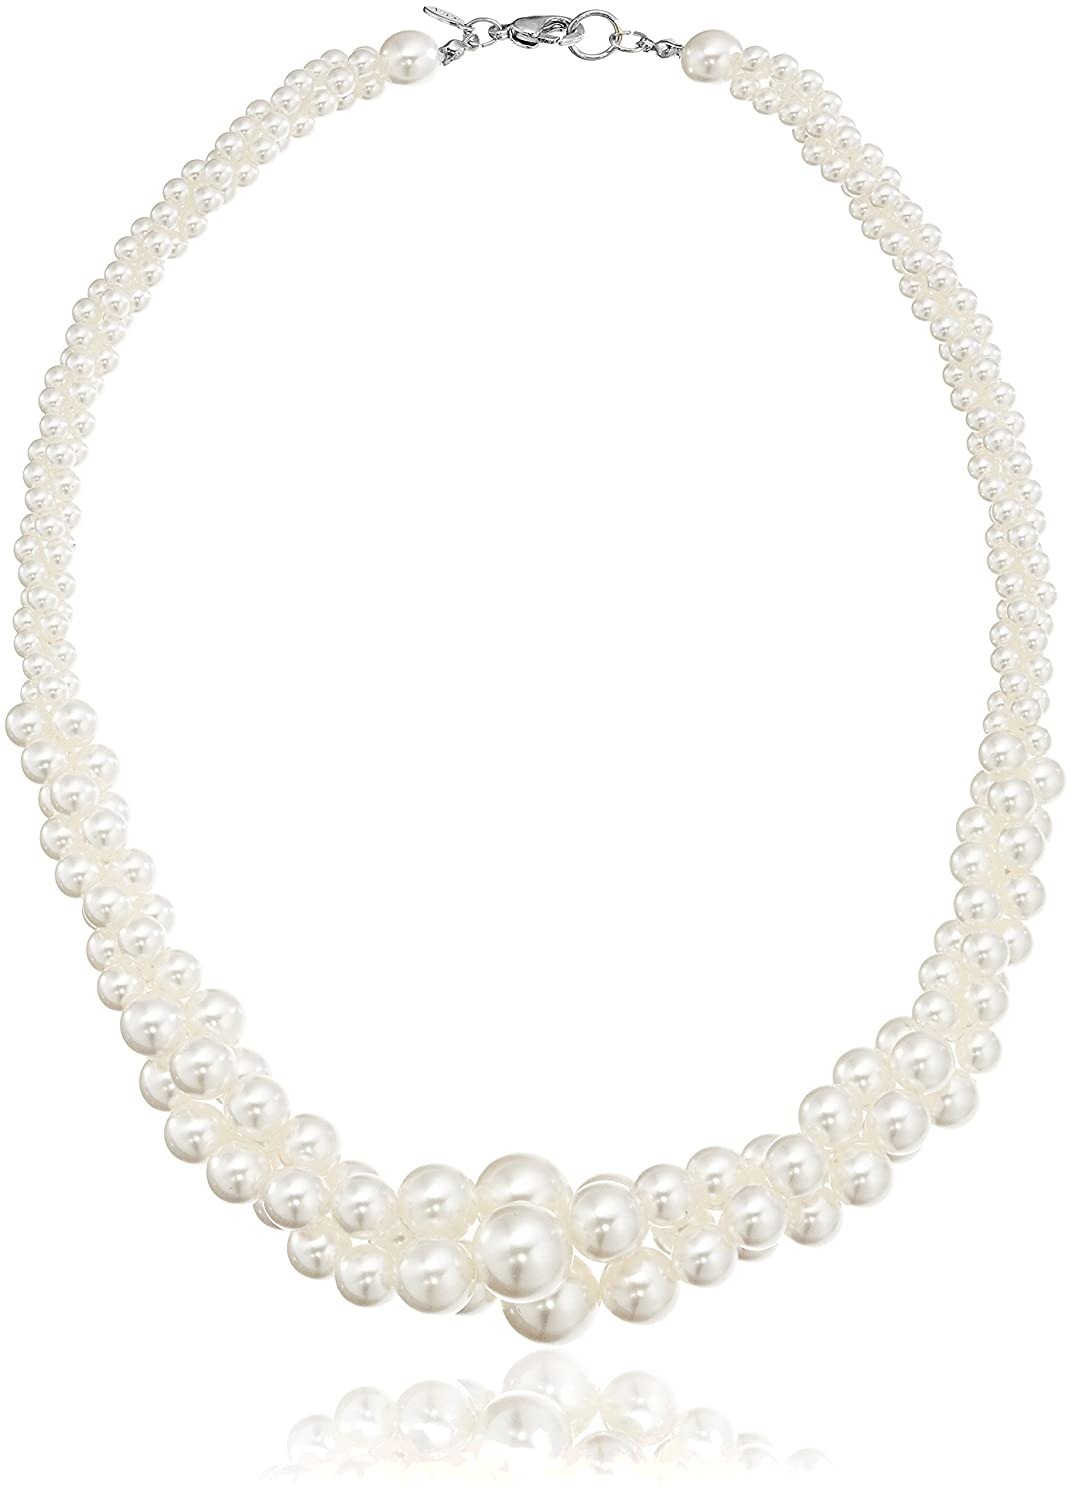 Three-Strand Simulated Pearl Necklace, 18